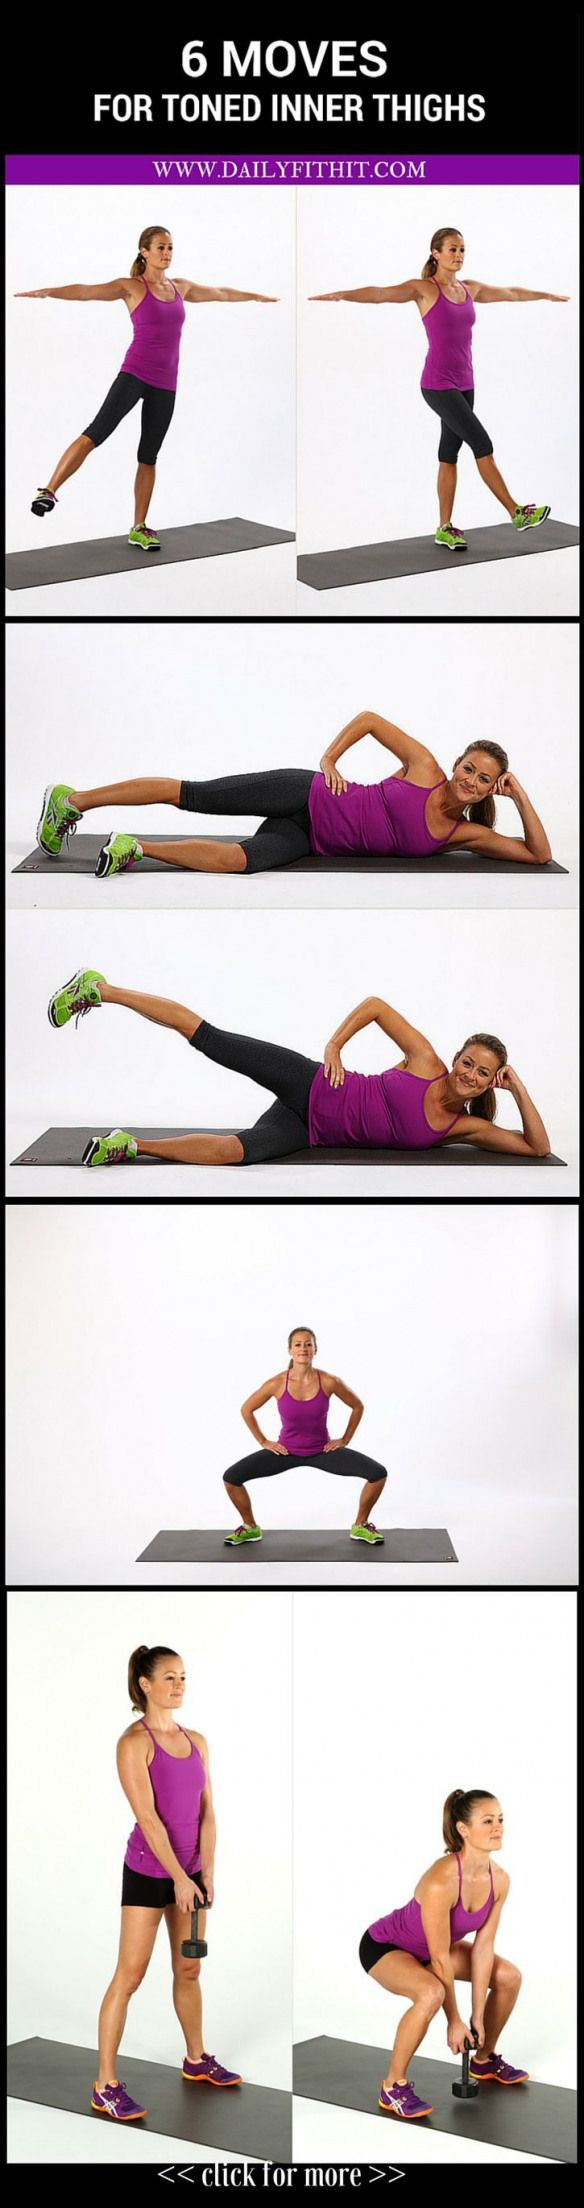 6 Moves for Terrifically Toned Inner Thighs #Workout #Fitness #dietworkout